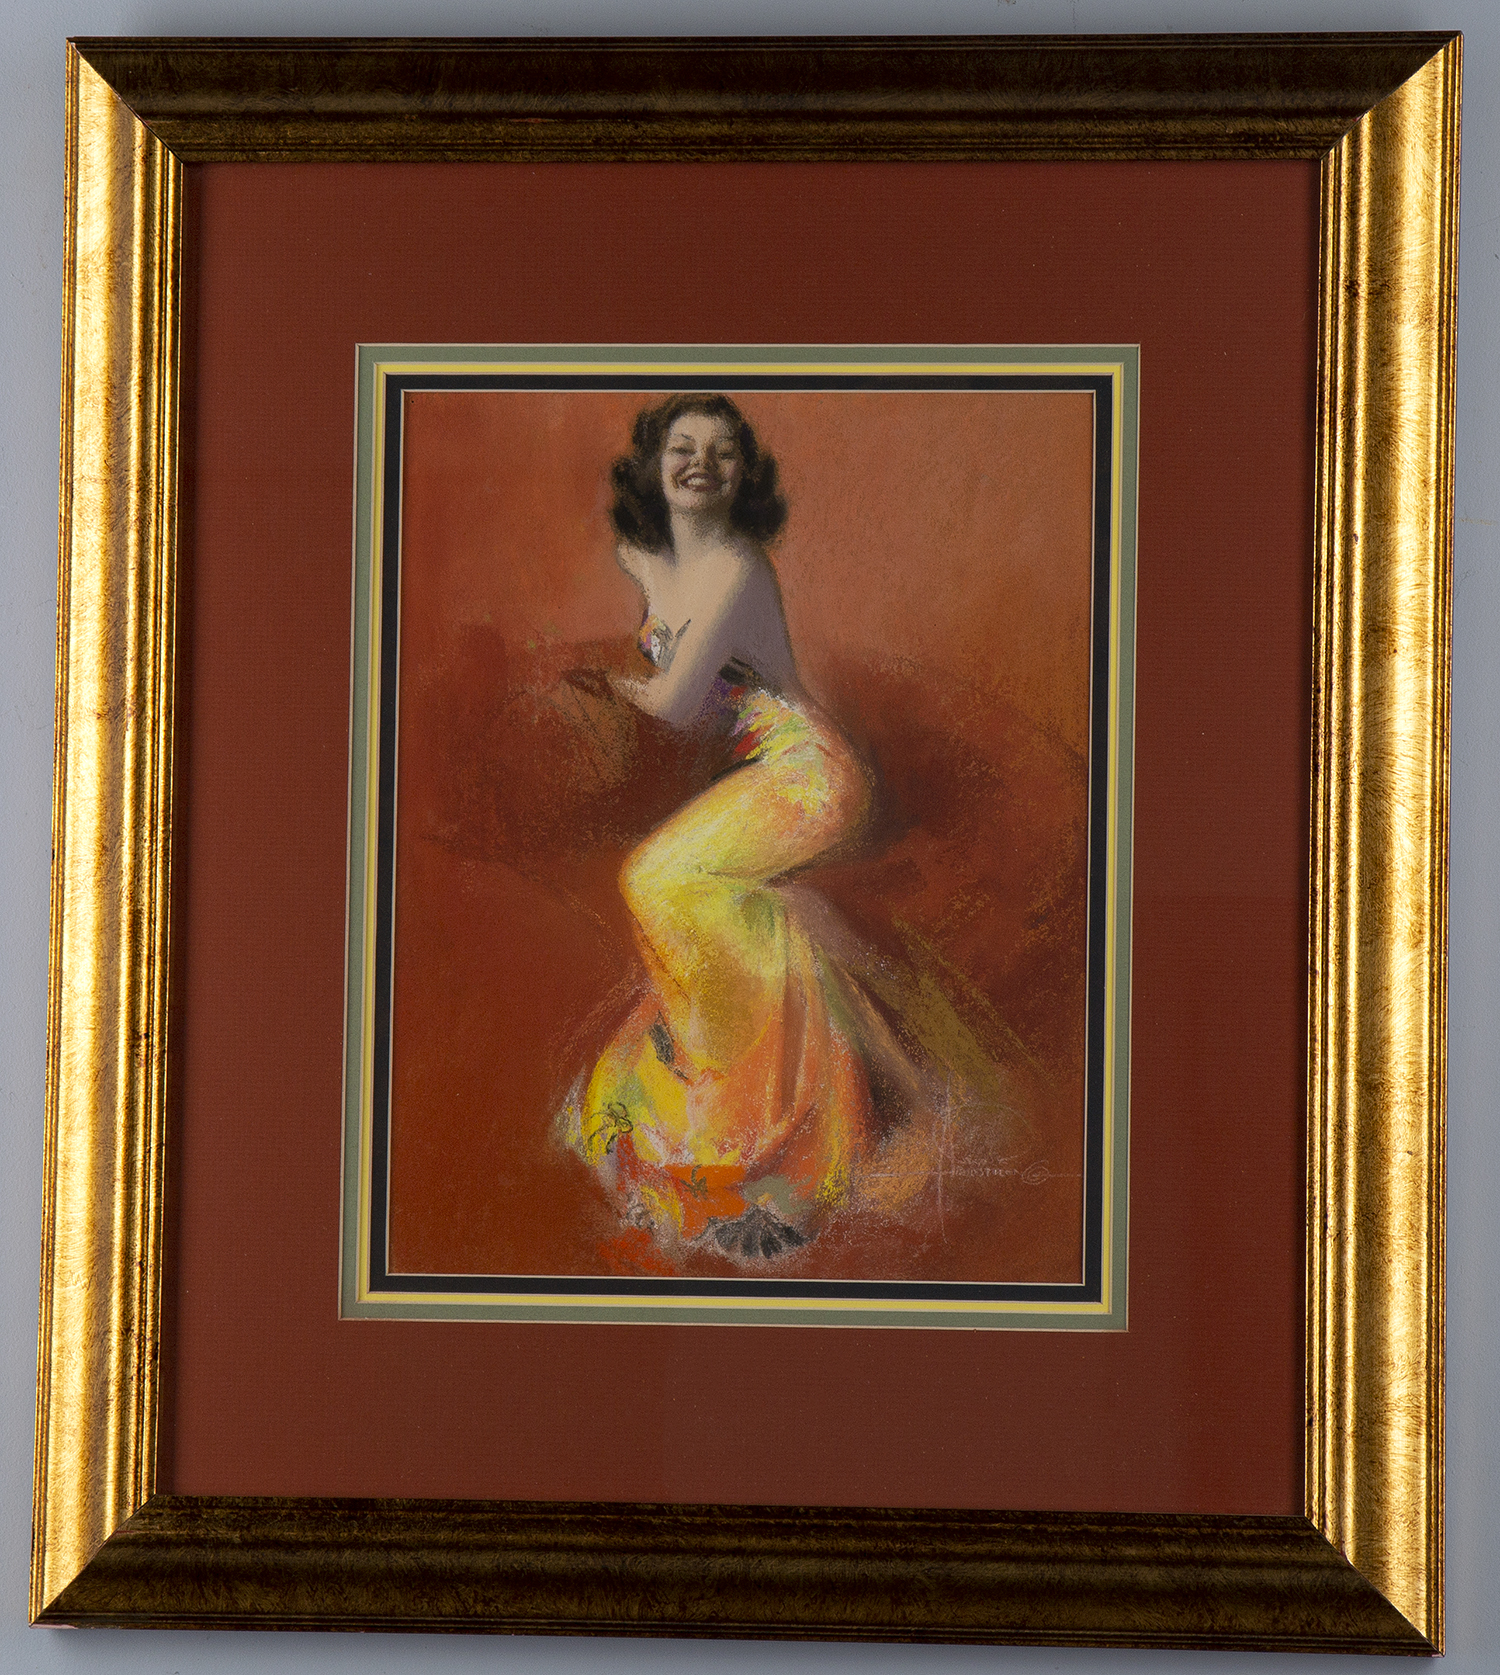 The pastel housed behind glass in a gold painted wood frame with matting